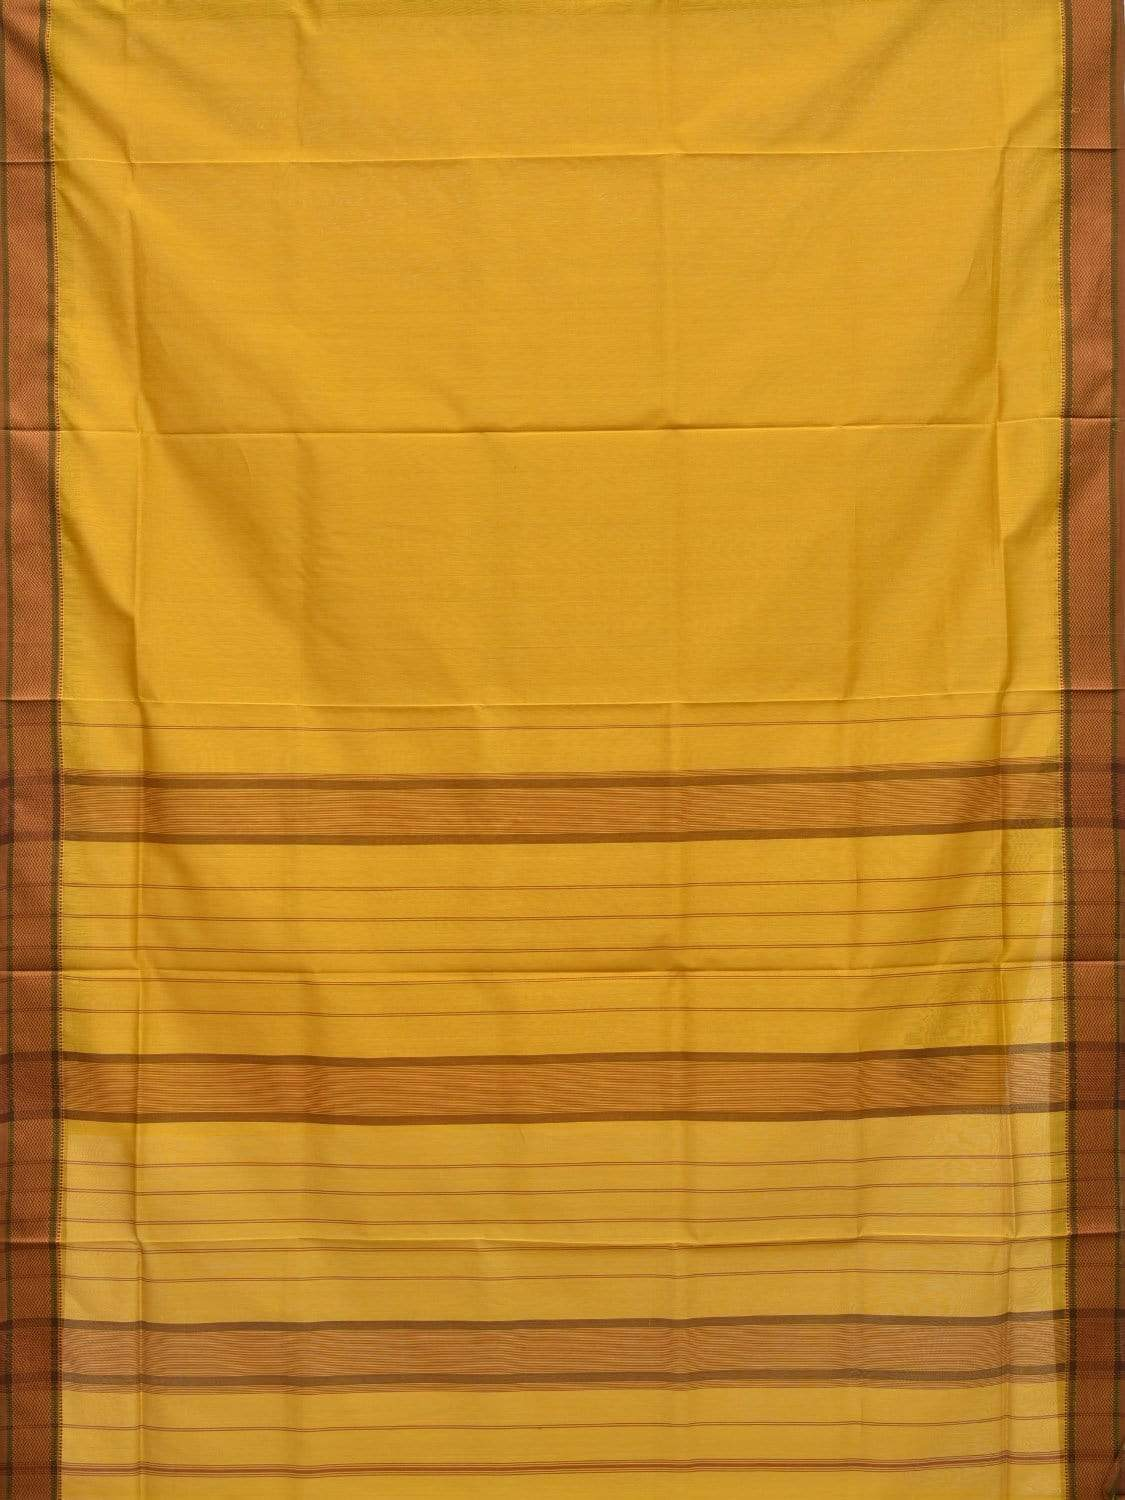 Yellow Maheshwari Cotton Silk Handloom Plain Saree with Strips Pallu Design m0123